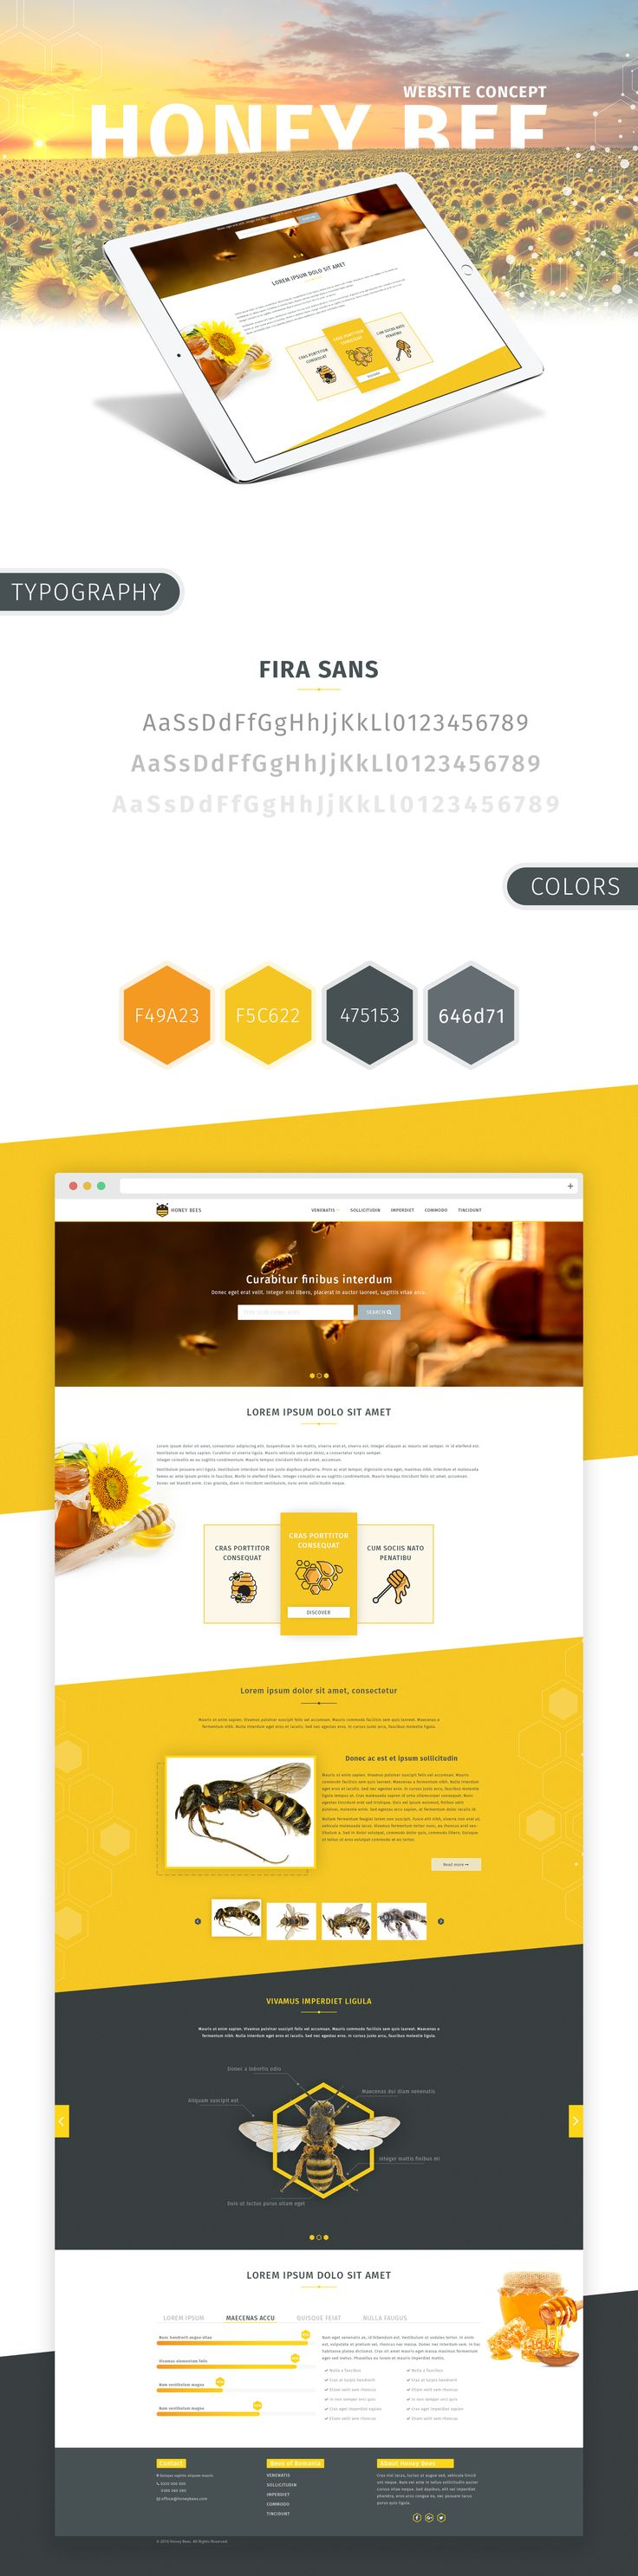 Honey Bee - Website Design Concept #bee #website #hexagon #design #honey #honeycomb #website #nature #webdesign #yellow